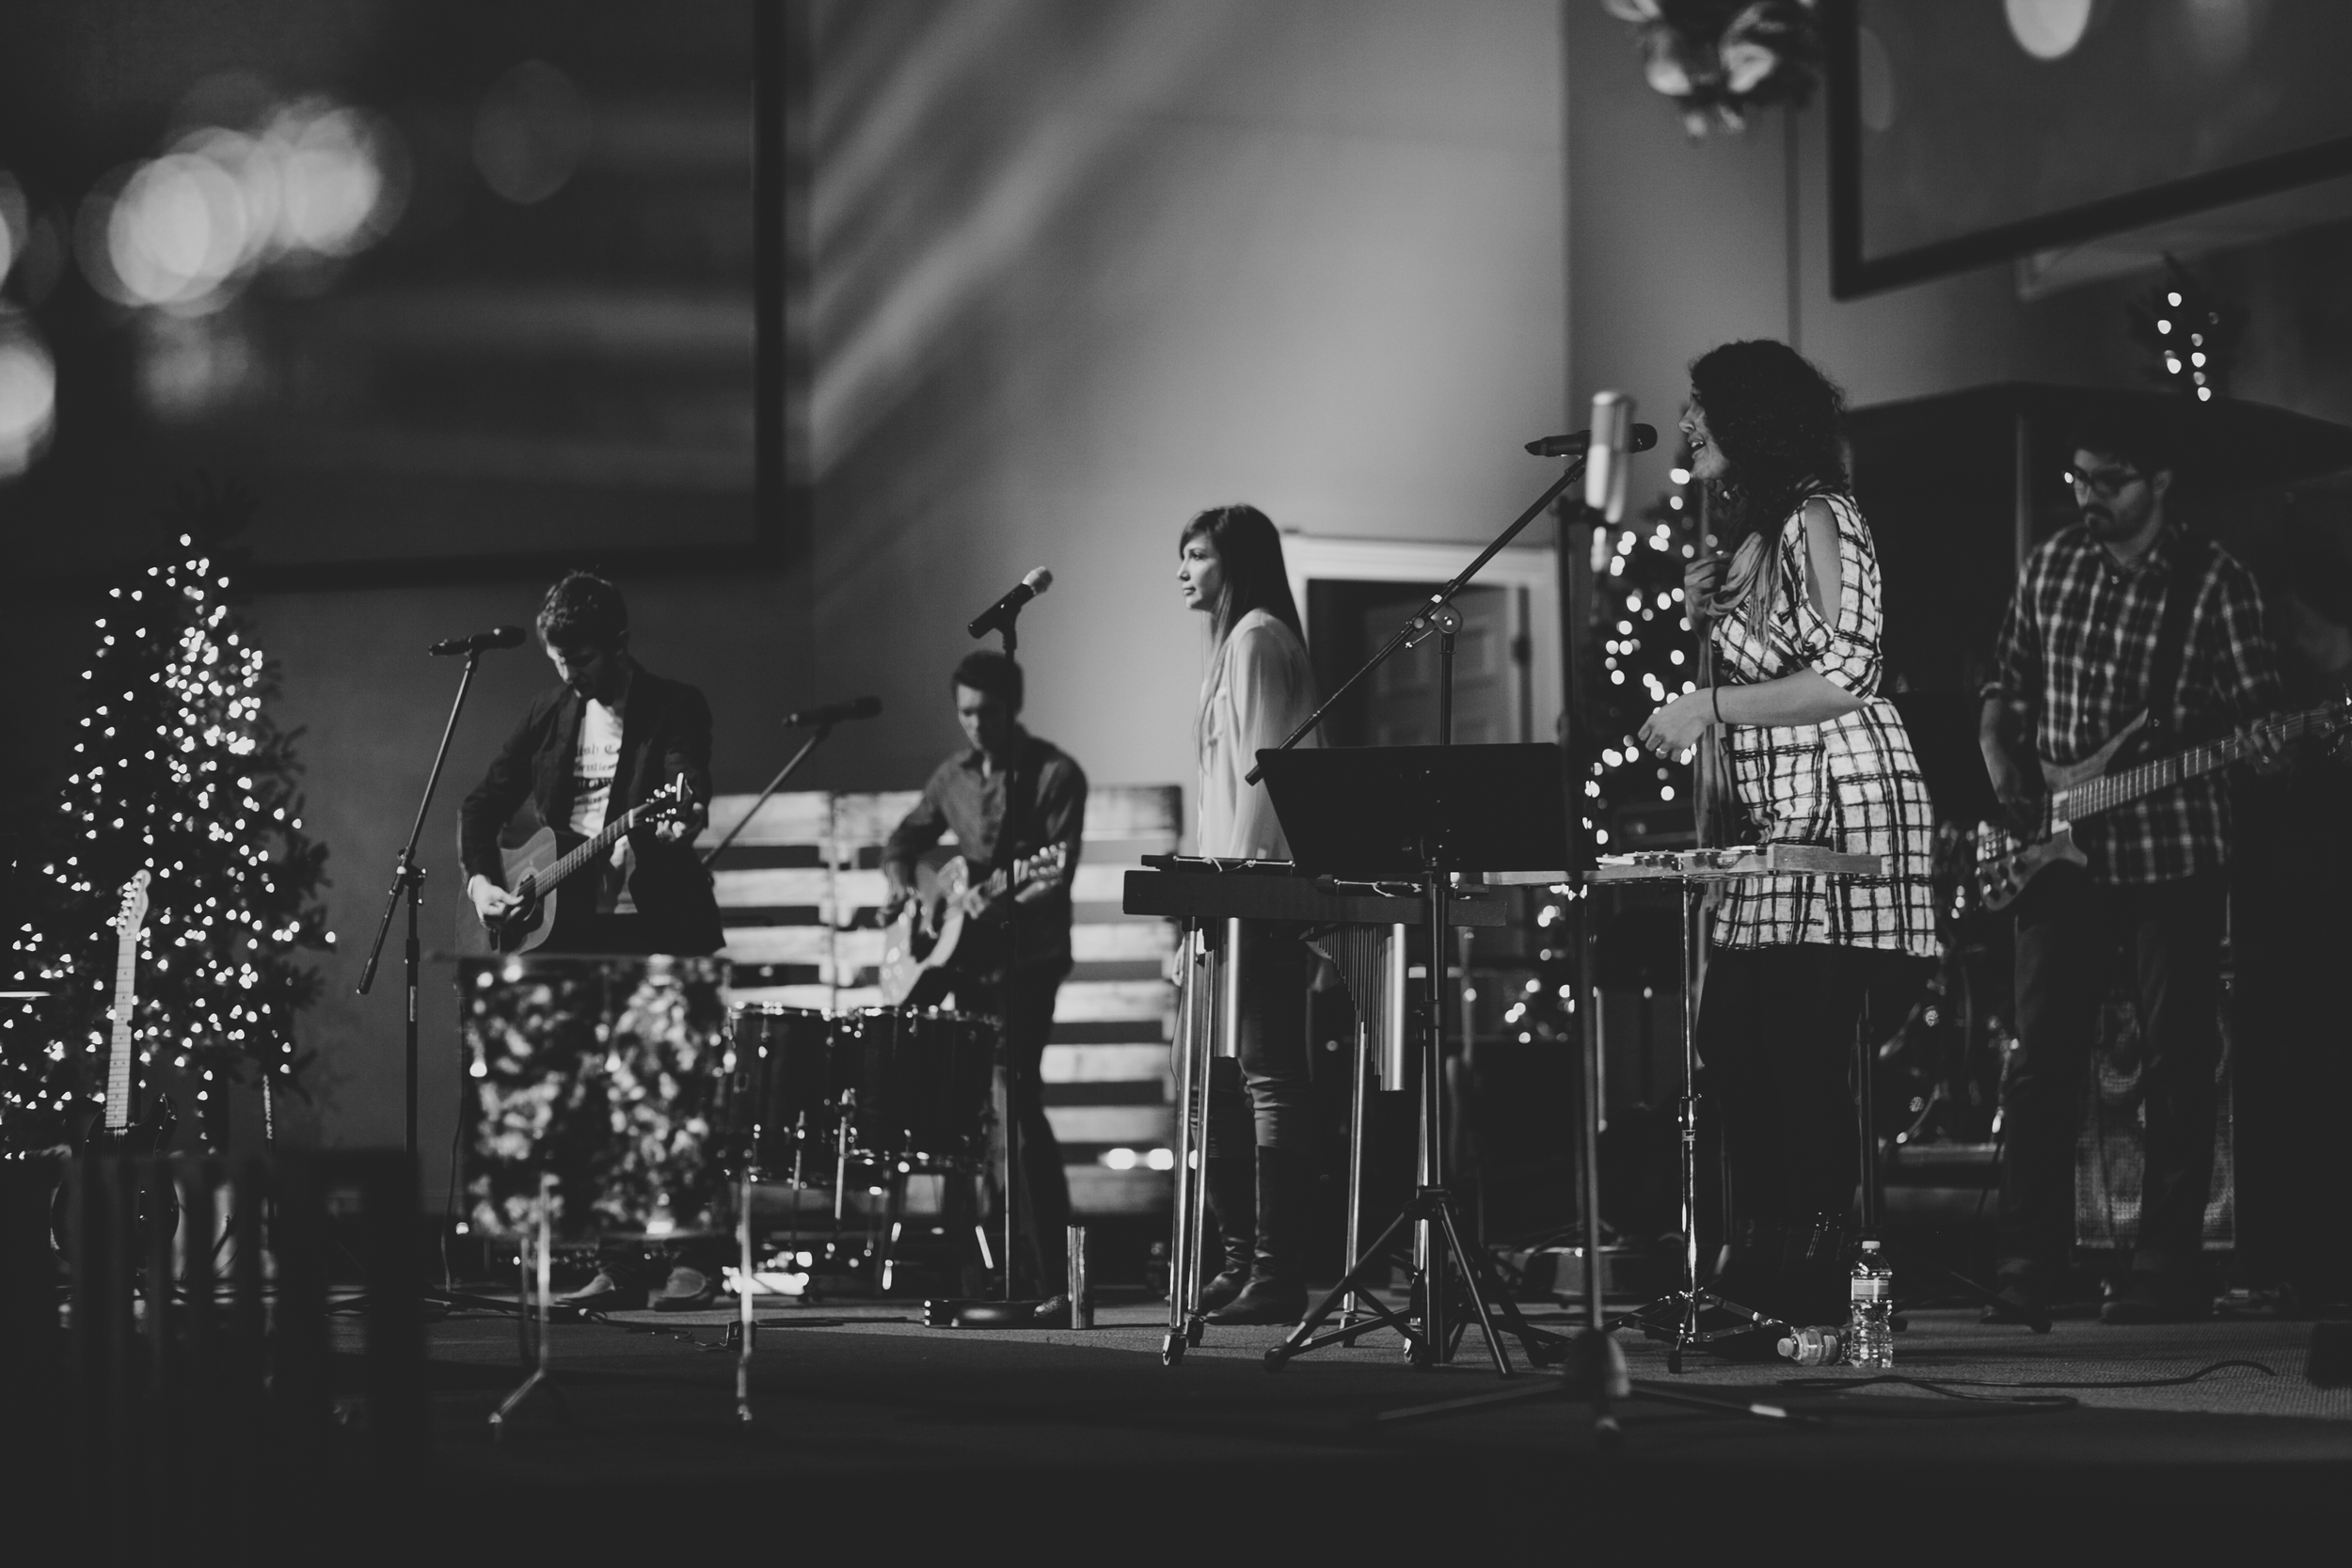 Our first Christmas Concert at The Crossing Church, 2012.